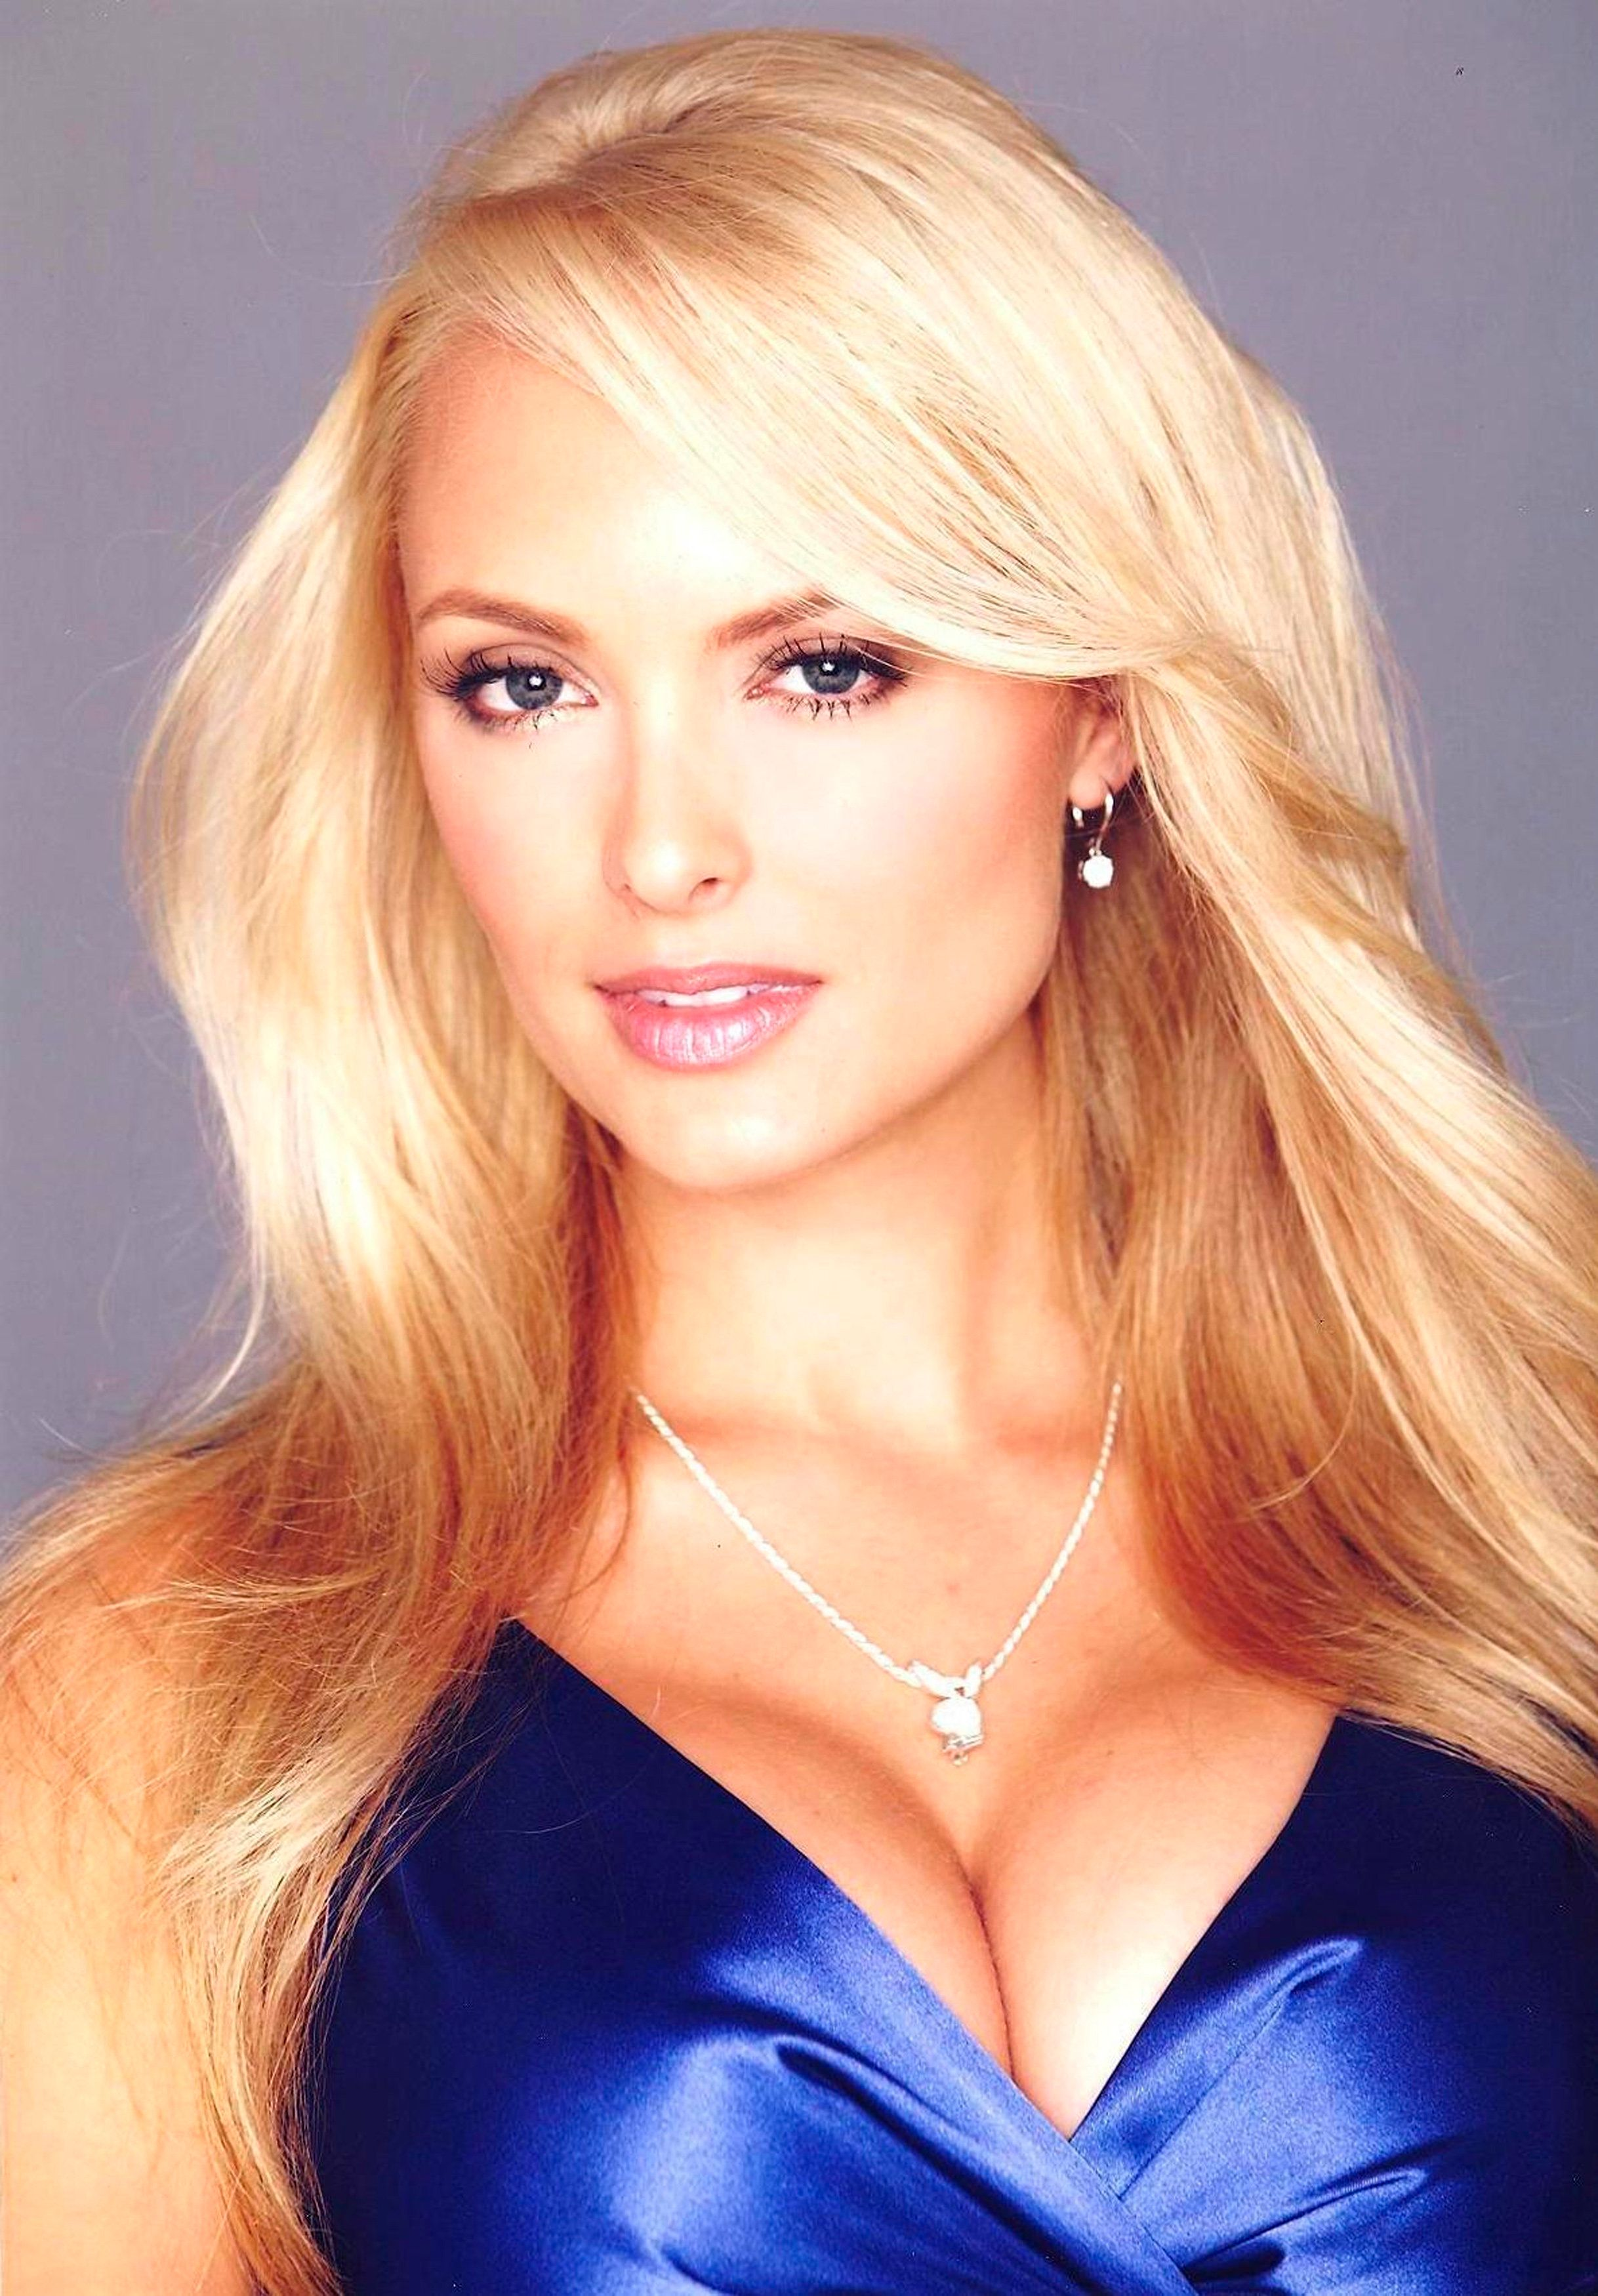 Shera Bechard is seen in this handout image obtained June 28, 2011. Two weeks after Playboy founder Hugh Hefner was dumped by Miss December 2009 just before their wedding, Hefner said on June 27, 2011 that he was now dating Miss November 2010. The 85-year-old magazine mogul moved on to Shera Bechard after Crystal Harris had second thoughts about becoming the third Mrs. Hugh Hefner. Bechard, a 27-year-old French-Canadian model and fledgling actress, moved into the Playboy Mansion in April.   REUTERS/Courtesy of Playboy/Handout   (UNITED STATES - Tags: ENTERTAINMENT) FOR EDITORIAL USE ONLY. NOT FOR SALE FOR MARKETING OR ADVERTISING CAMPAIGNS. THIS IMAGE HAS BEEN SUPPLIED BY A THIRD PARTY. IT IS DISTRIBUTED, EXACTLY AS RECEIVED BY REUTERS, AS A SERVICE TO CLIENTS